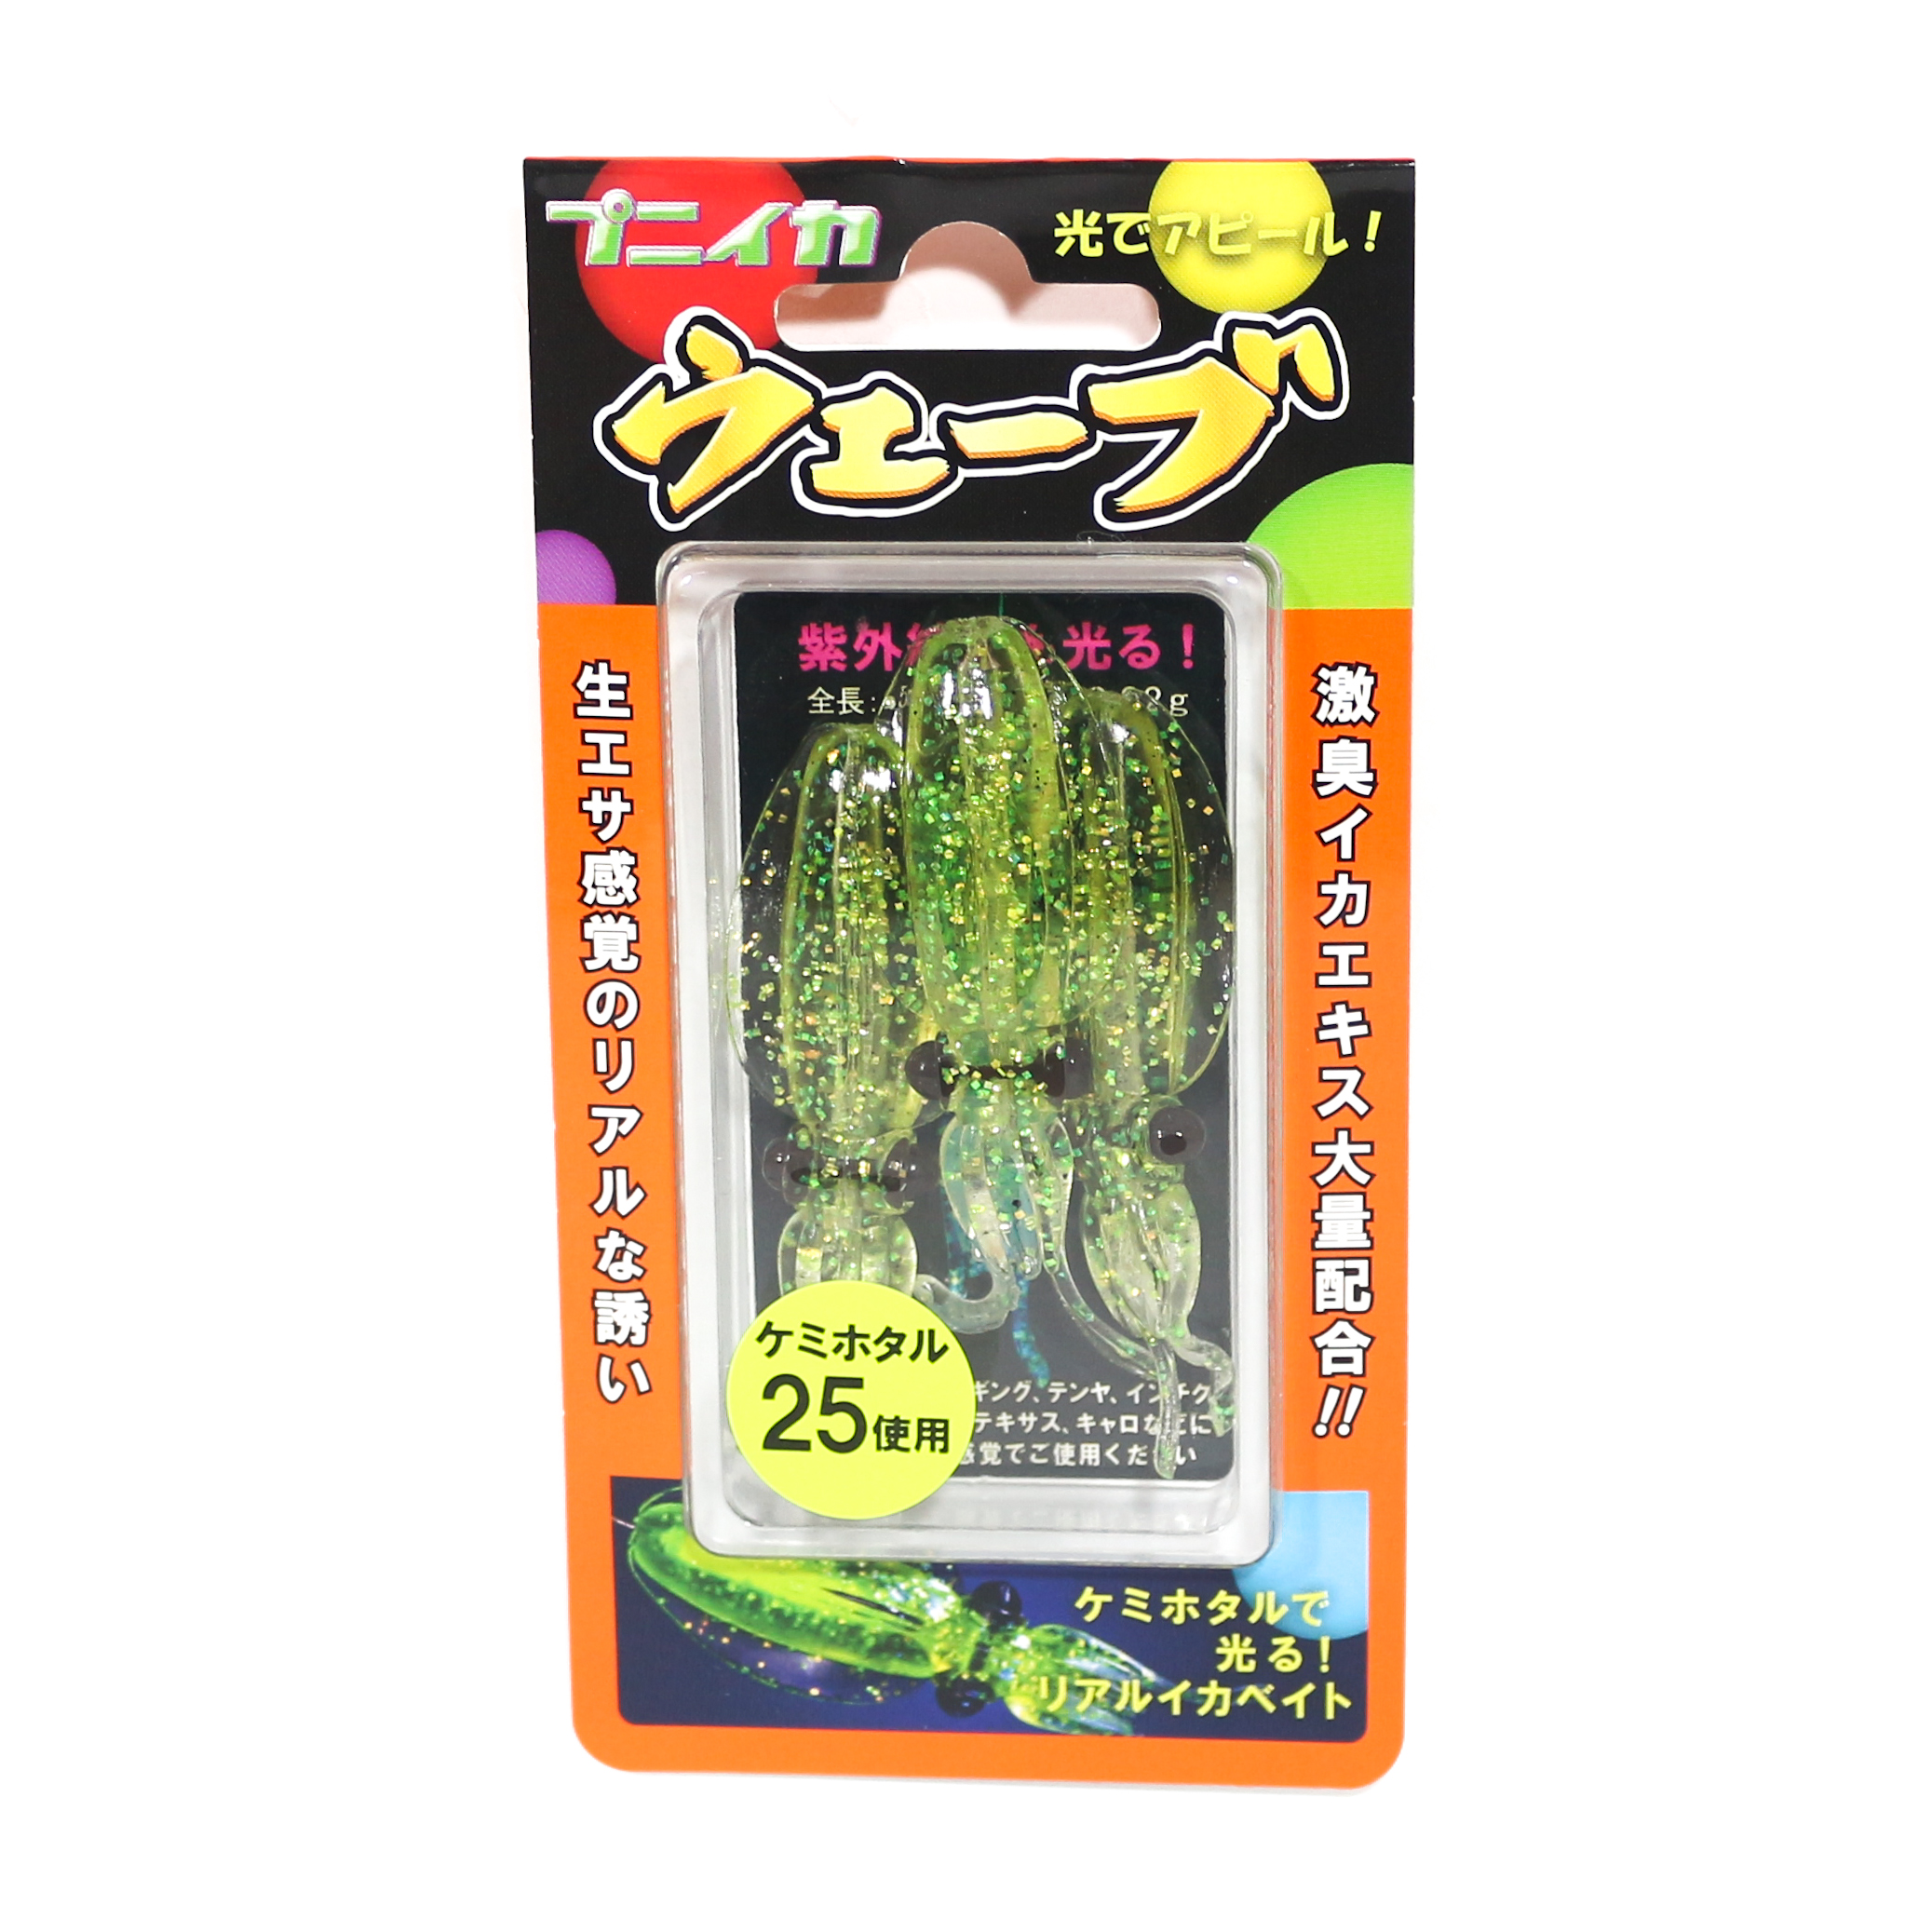 Lumica Soft Lure Puniika Wave 65mm 3 Pieces Per Pack 107 (7589)